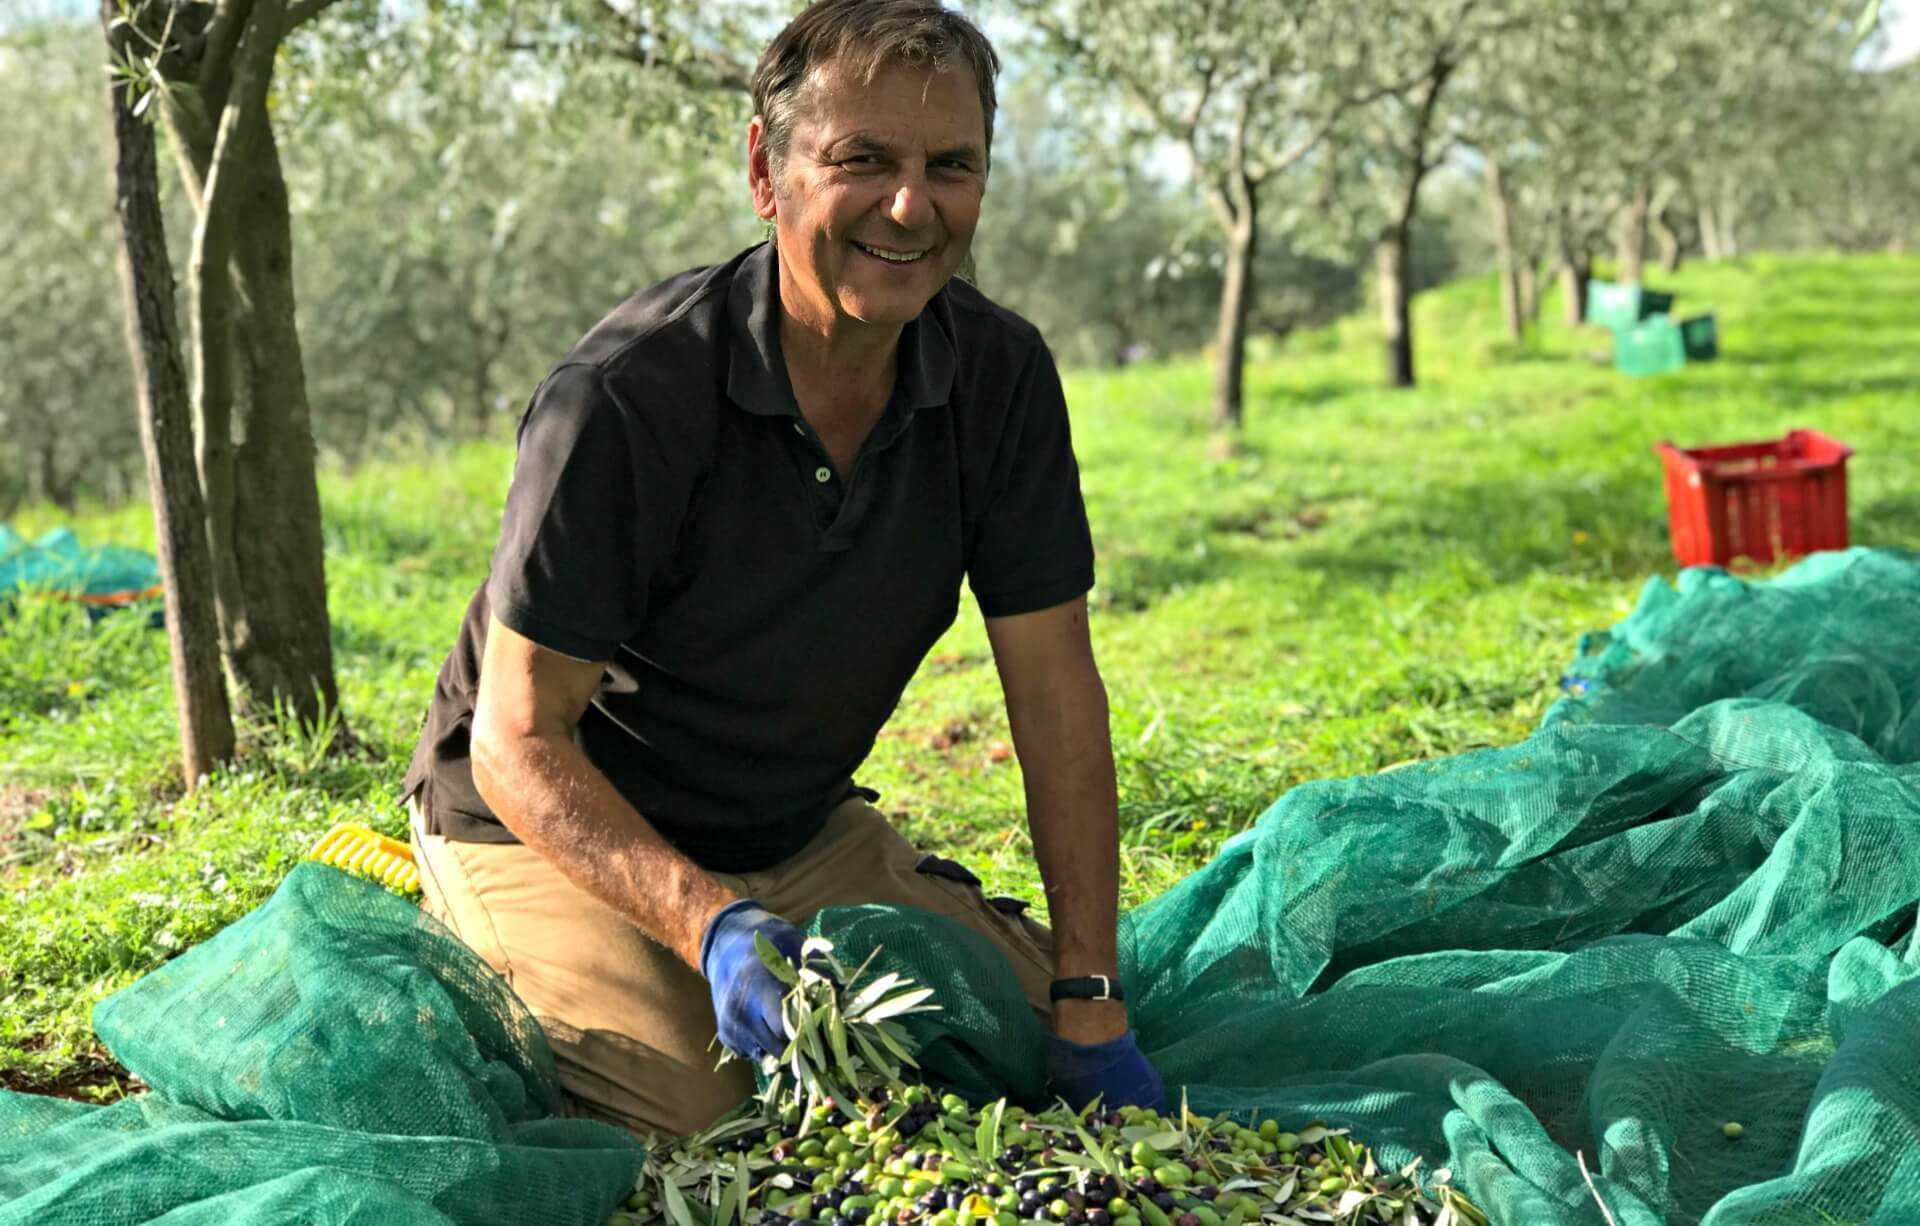 croatians-celebrate-a-high-quality-olive-harvest